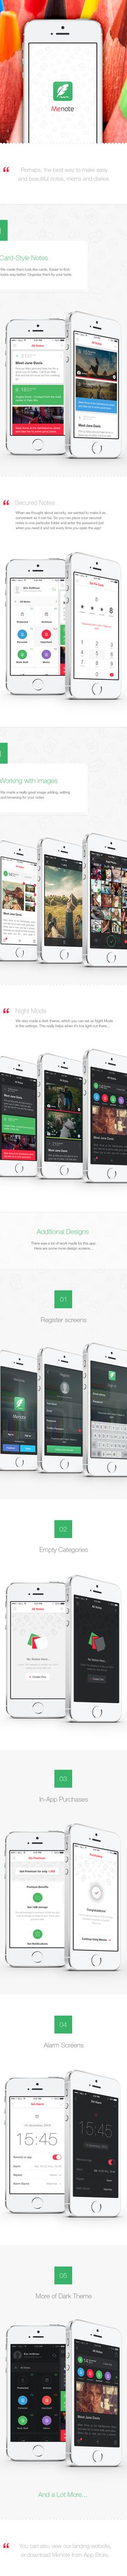 Menote - Awesome Notes for iOS by Dmitriy Haraberush, via Behance